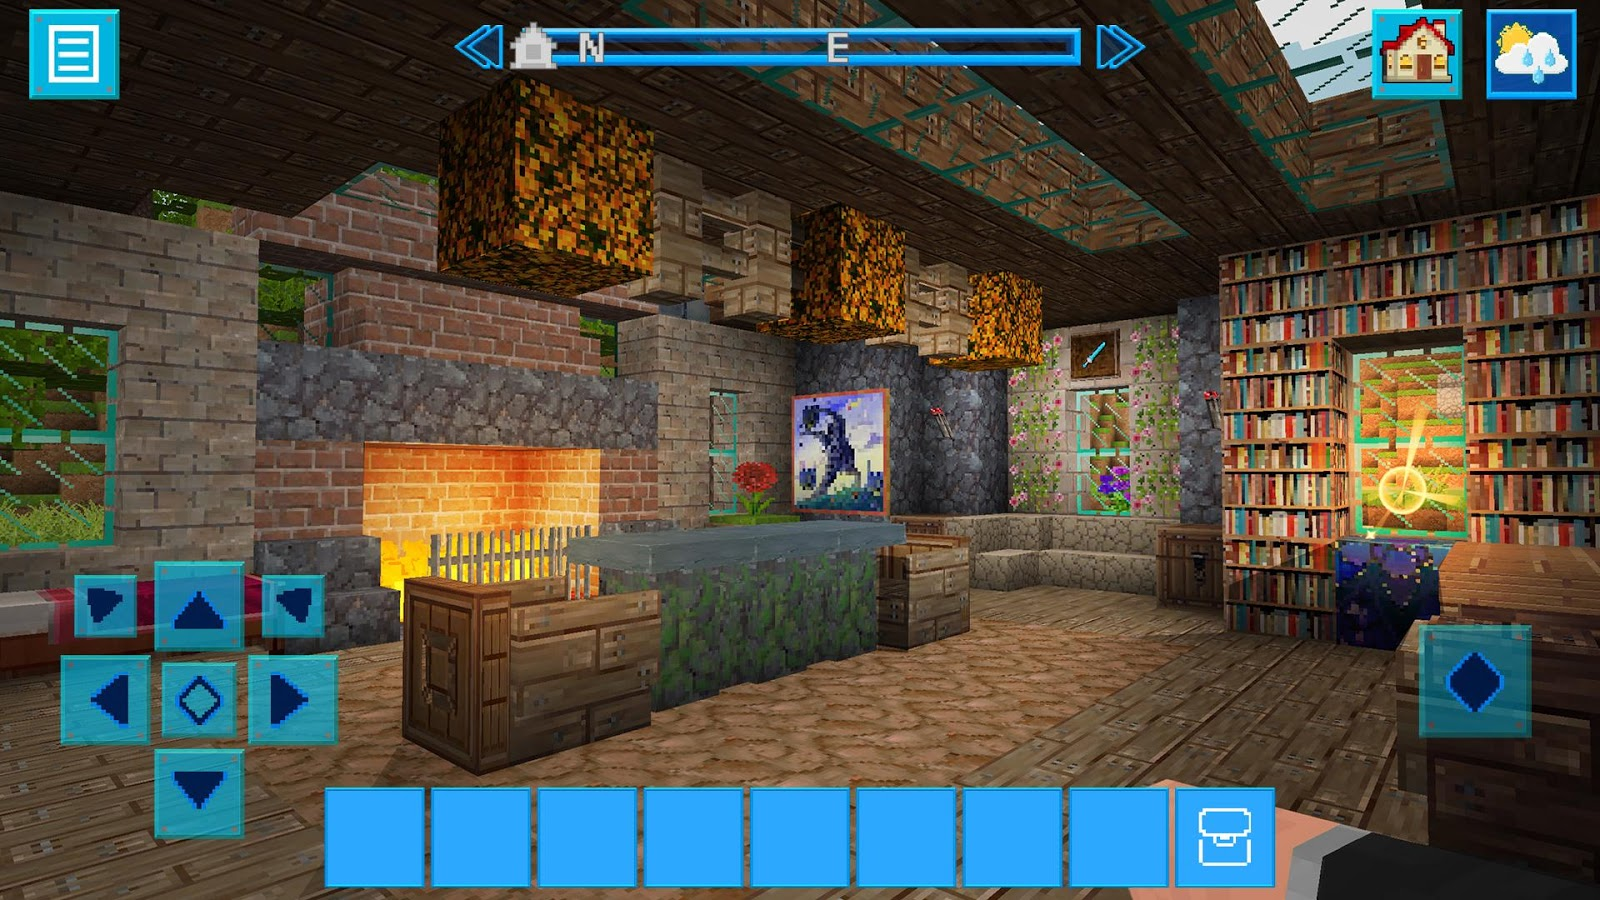 Earthcraft 3d block craft world exploration android for Block craft 3d online play